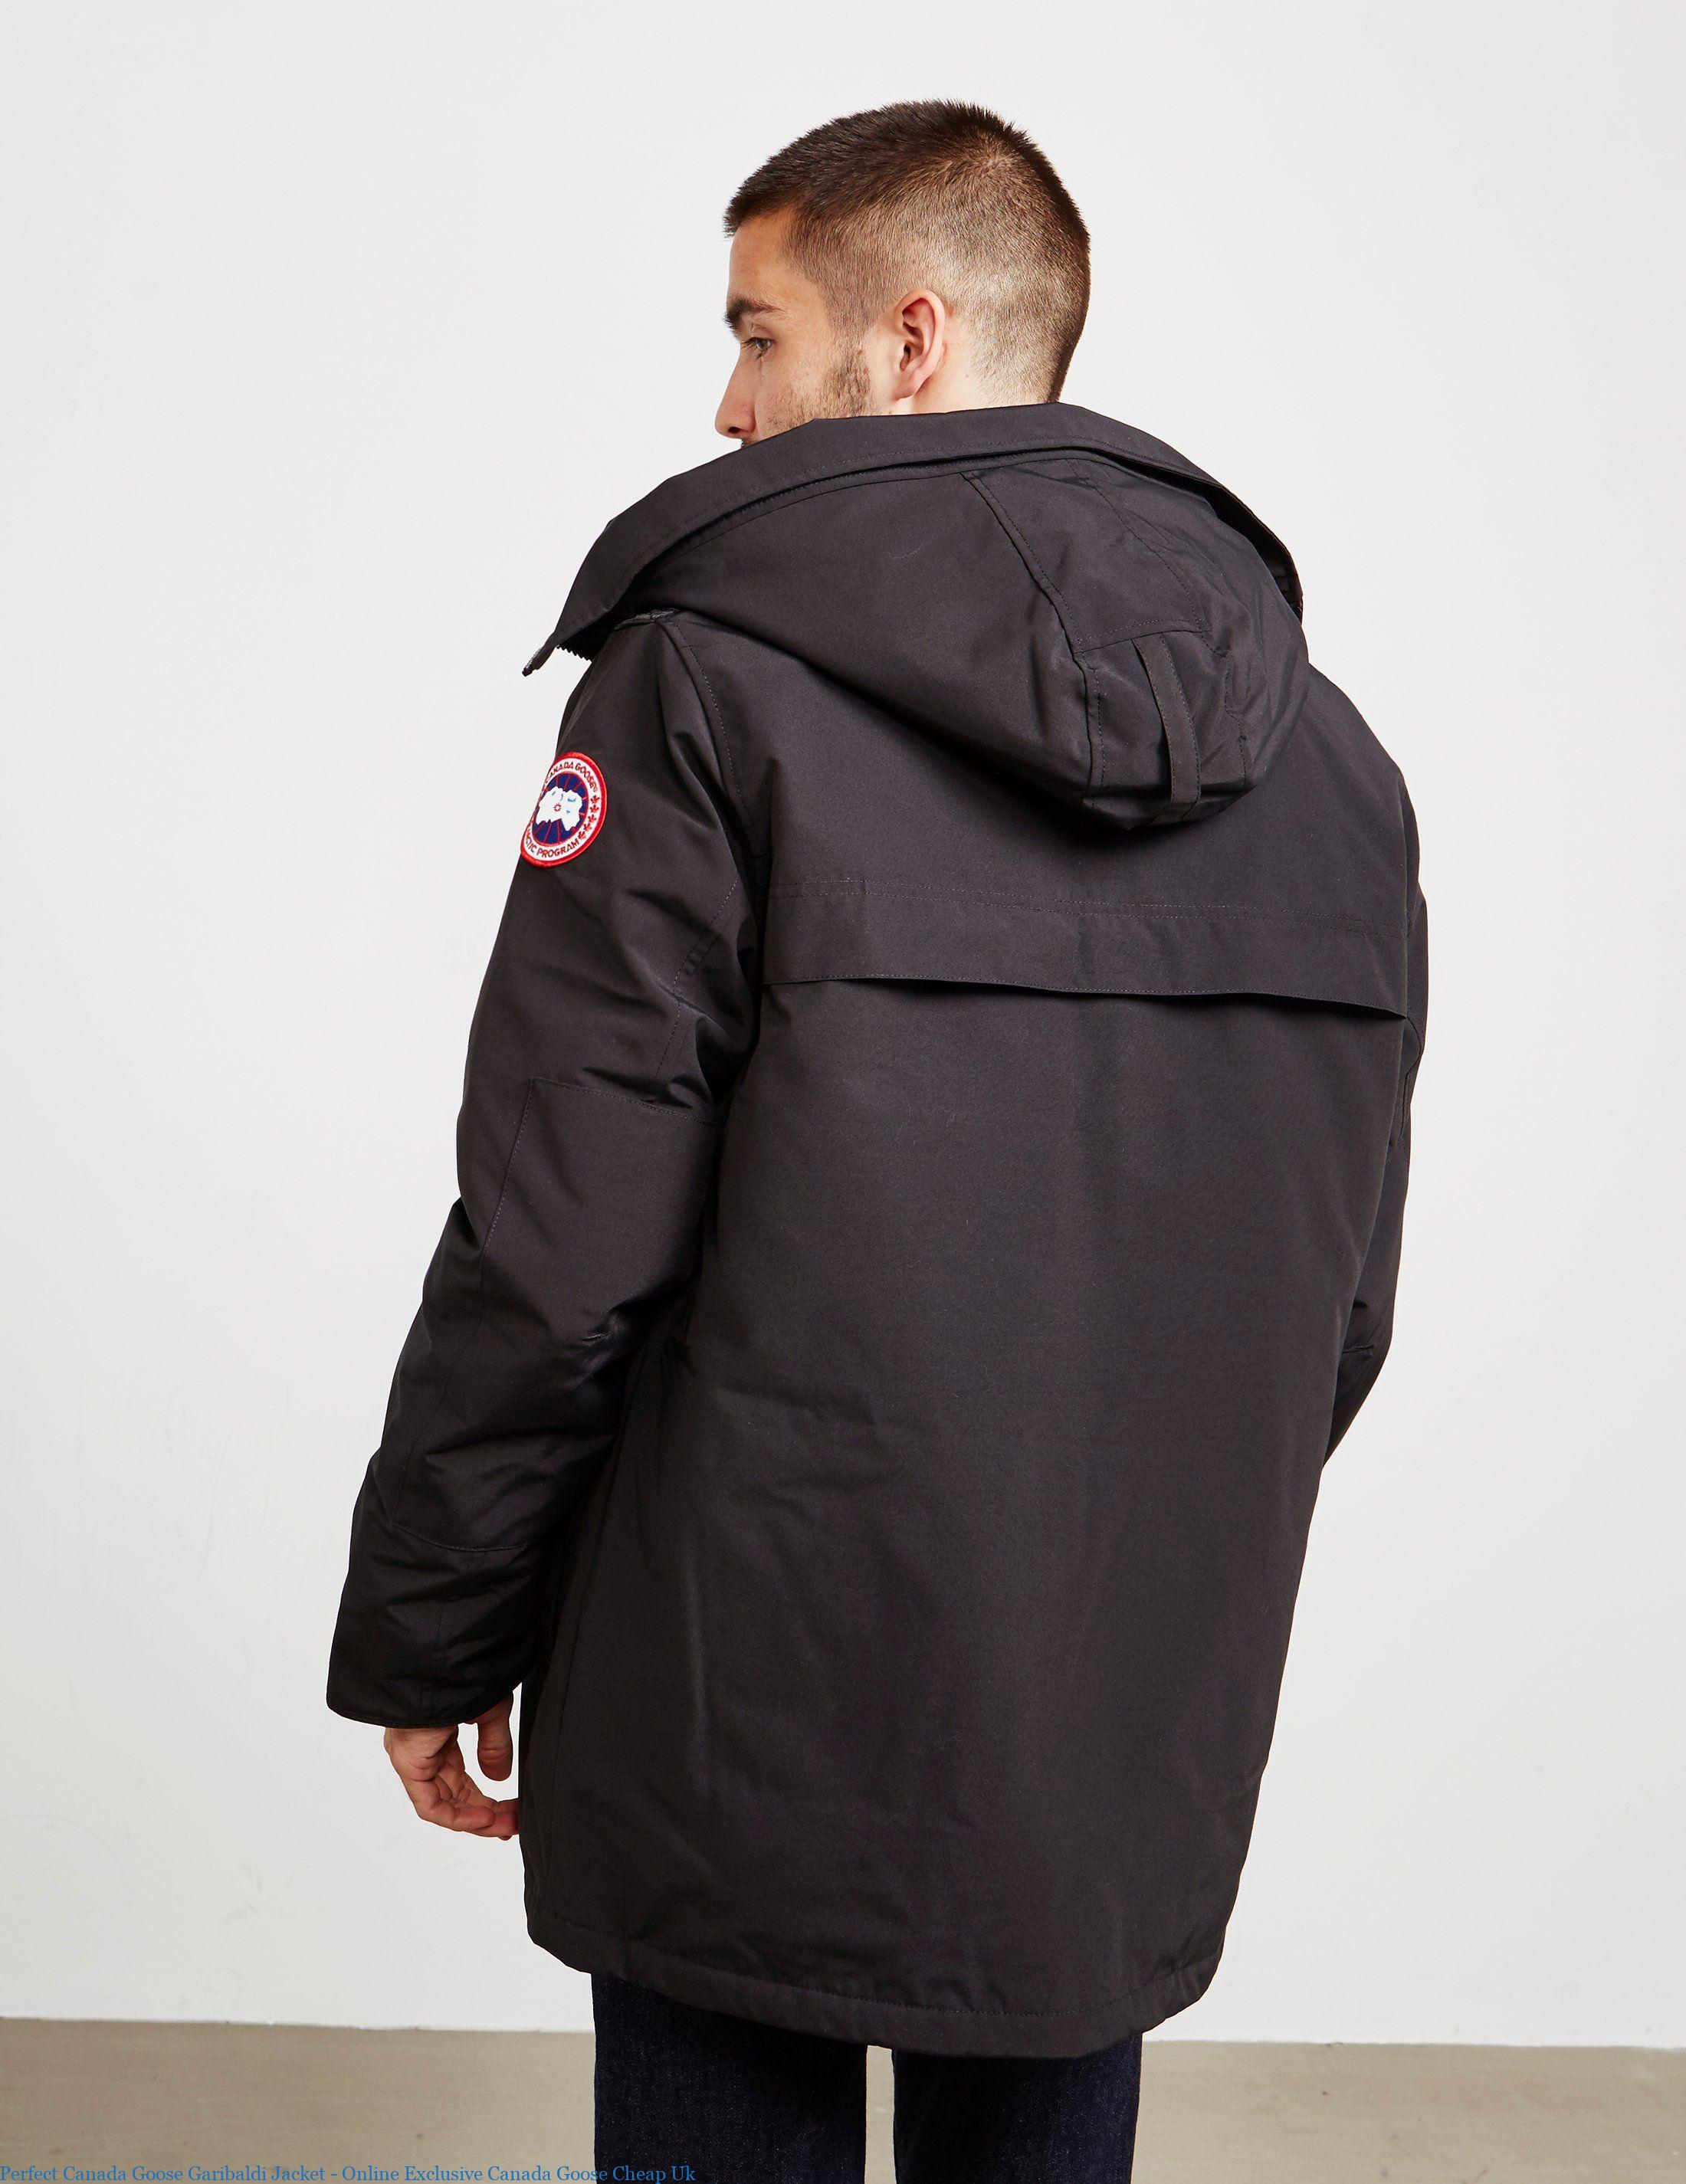 Perfect Canada Goose Garibaldi Jacket – Online Exclusive